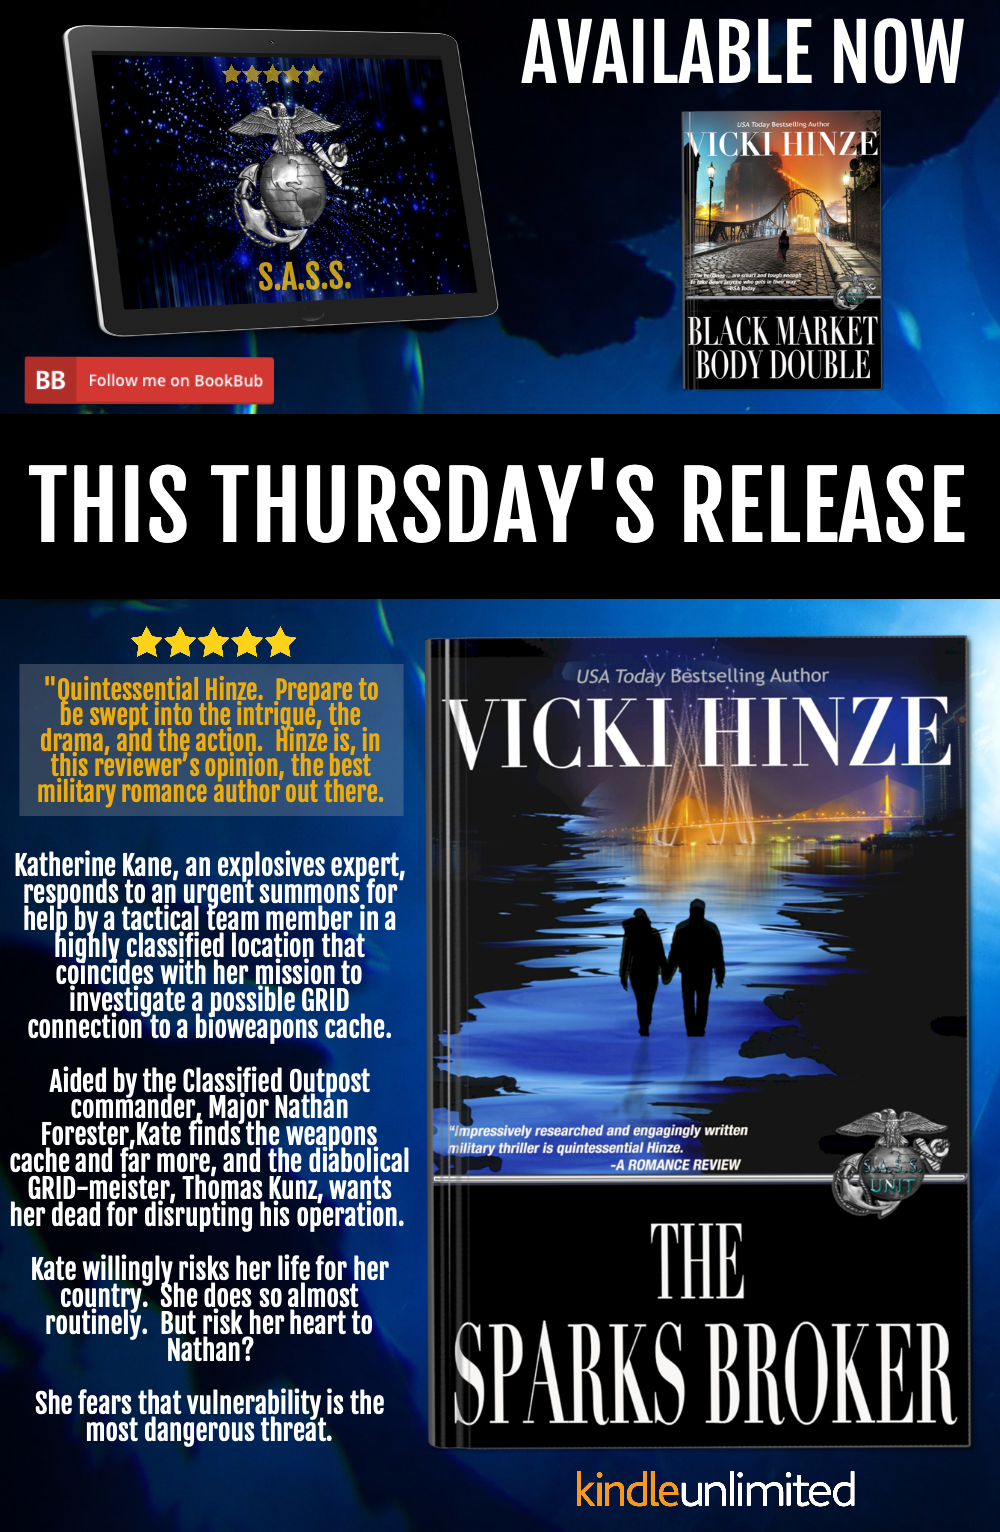 The Sparks Broker, Vicki Hinze, S.A.S.S.SERIES